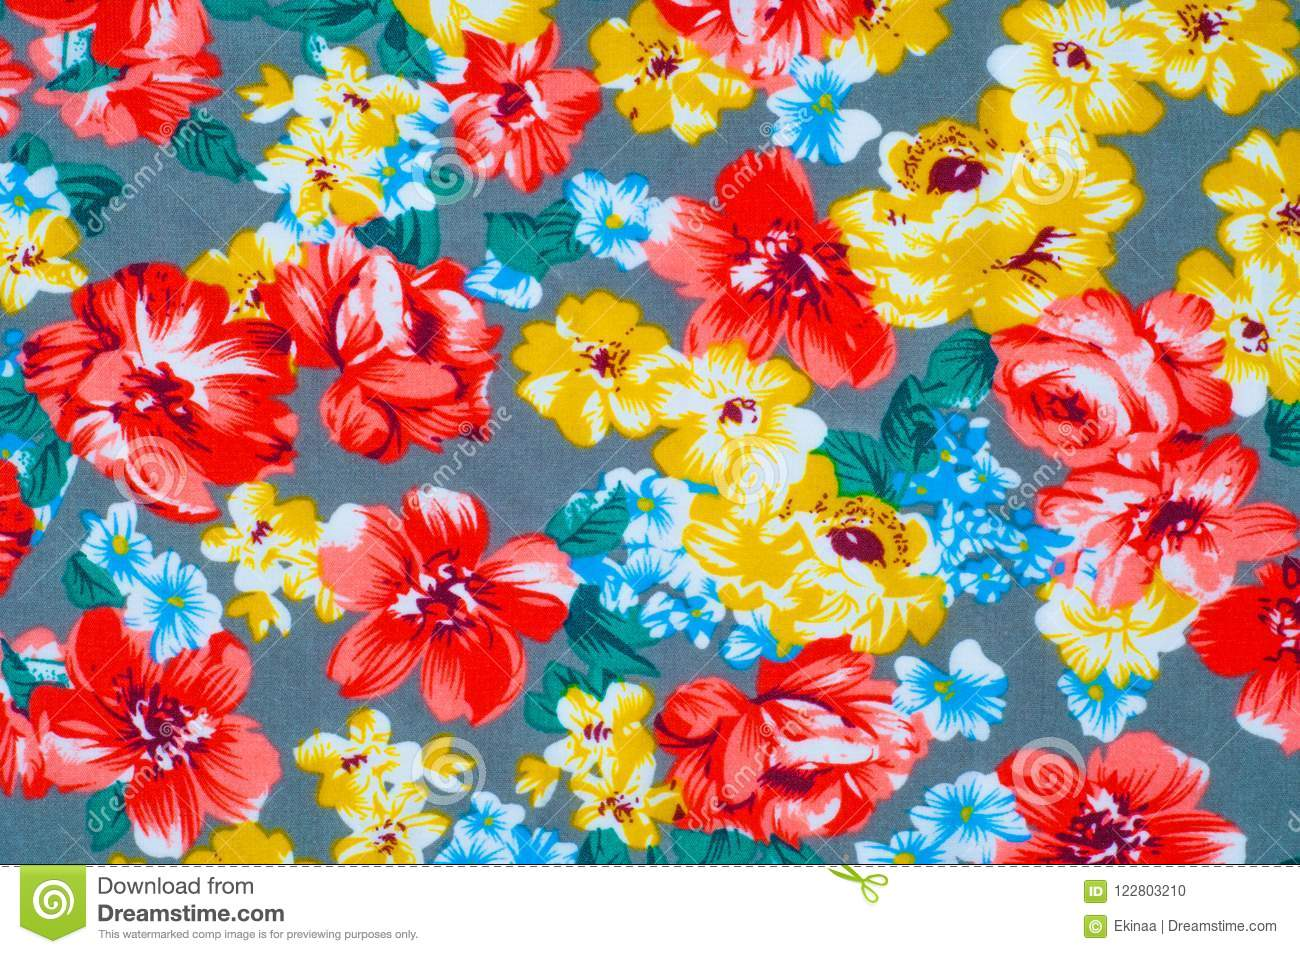 Texture Silk Cloth Yellow Red Flowers Painted On Cloth Stock Photo